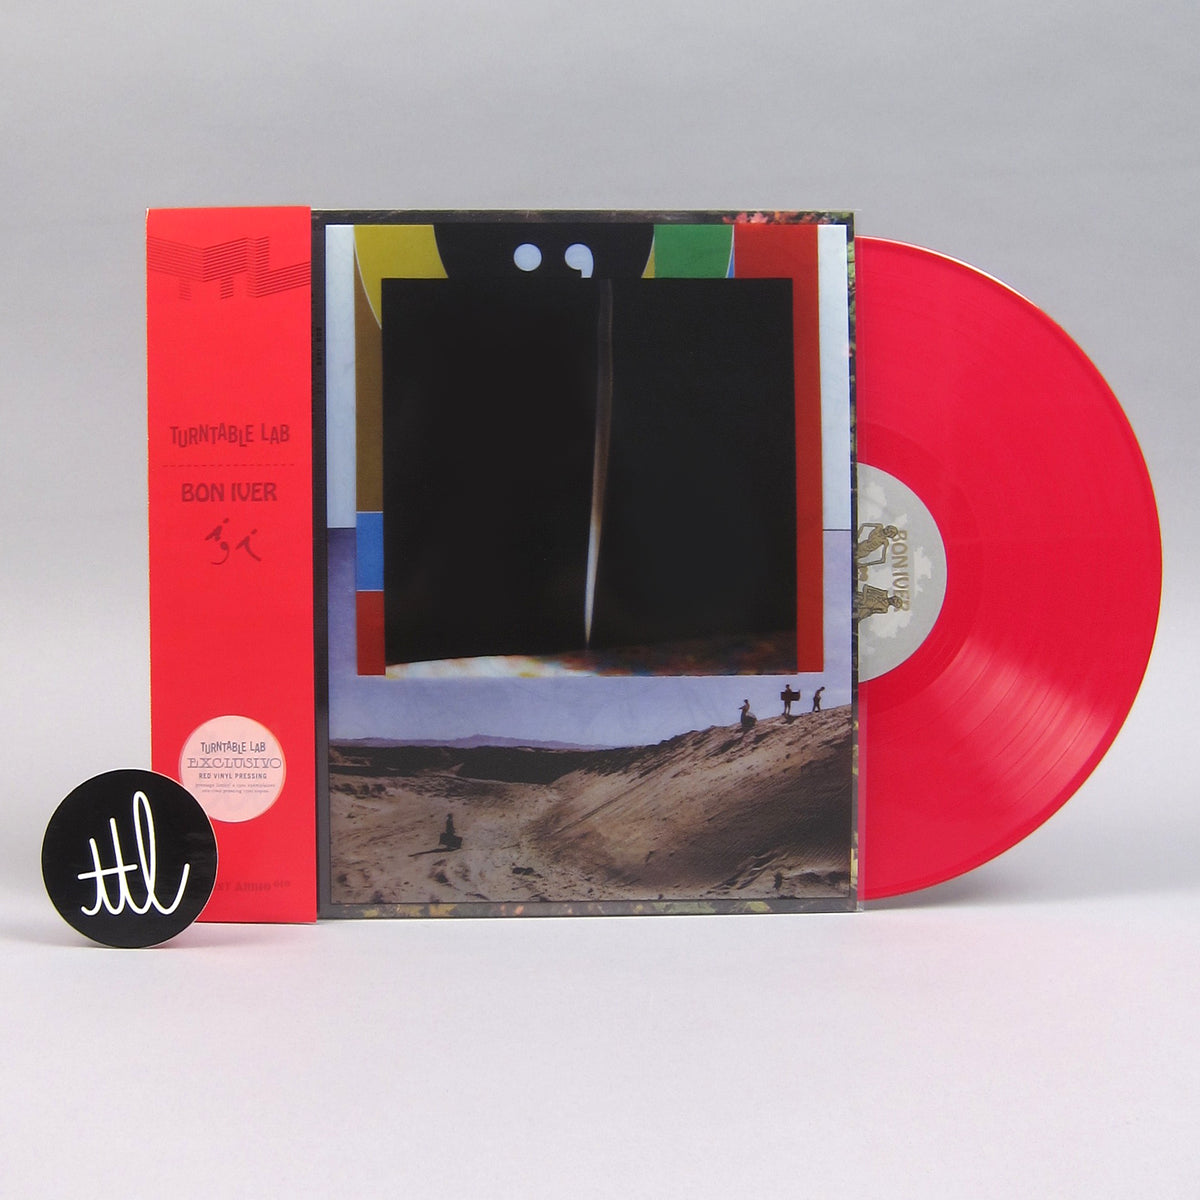 Bon Iver: i,i (Red Colored Vinyl) Vinyl LP - Turntable Lab Exclusive